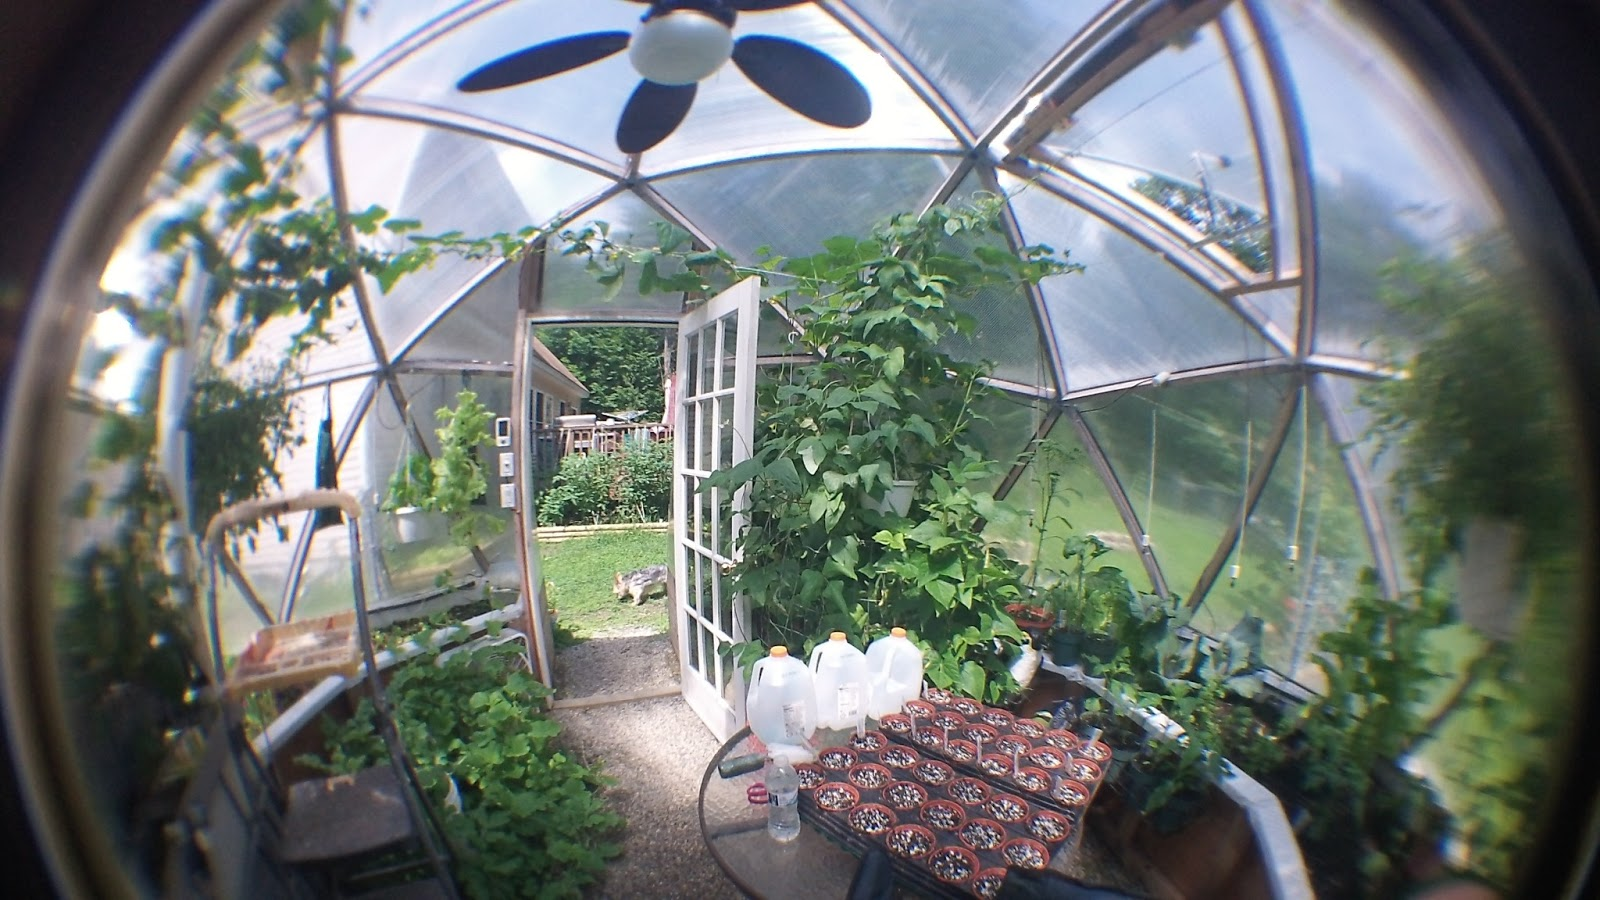 Alex S Geodesic Dome Greenhouse